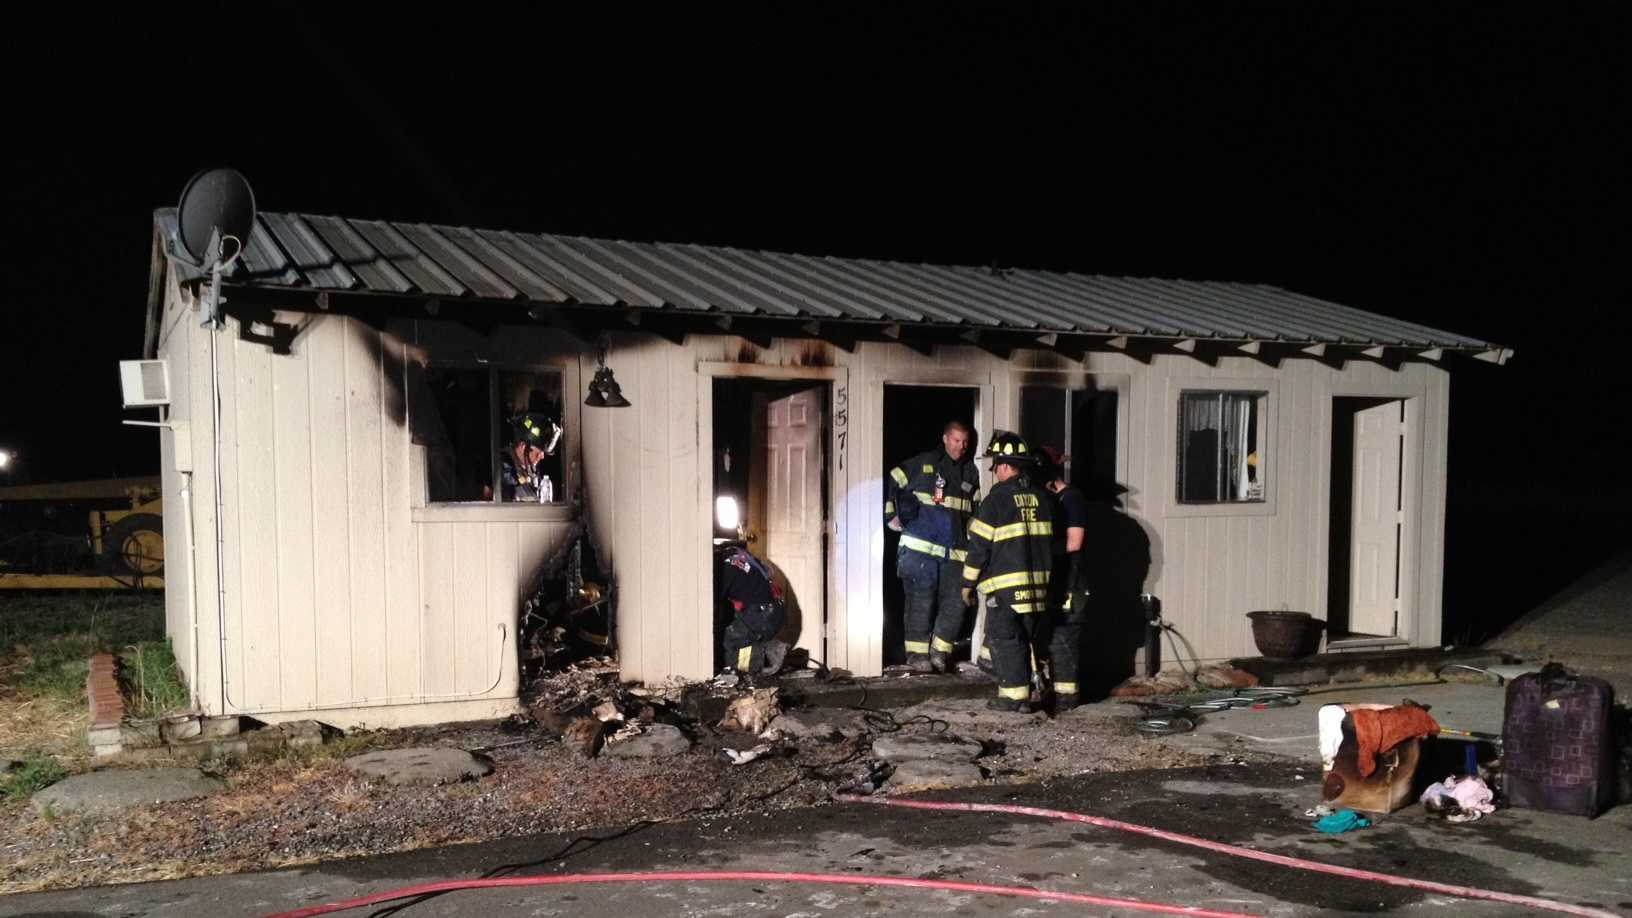 No one was home when a fire started in this Dixon home, according to firefighters.